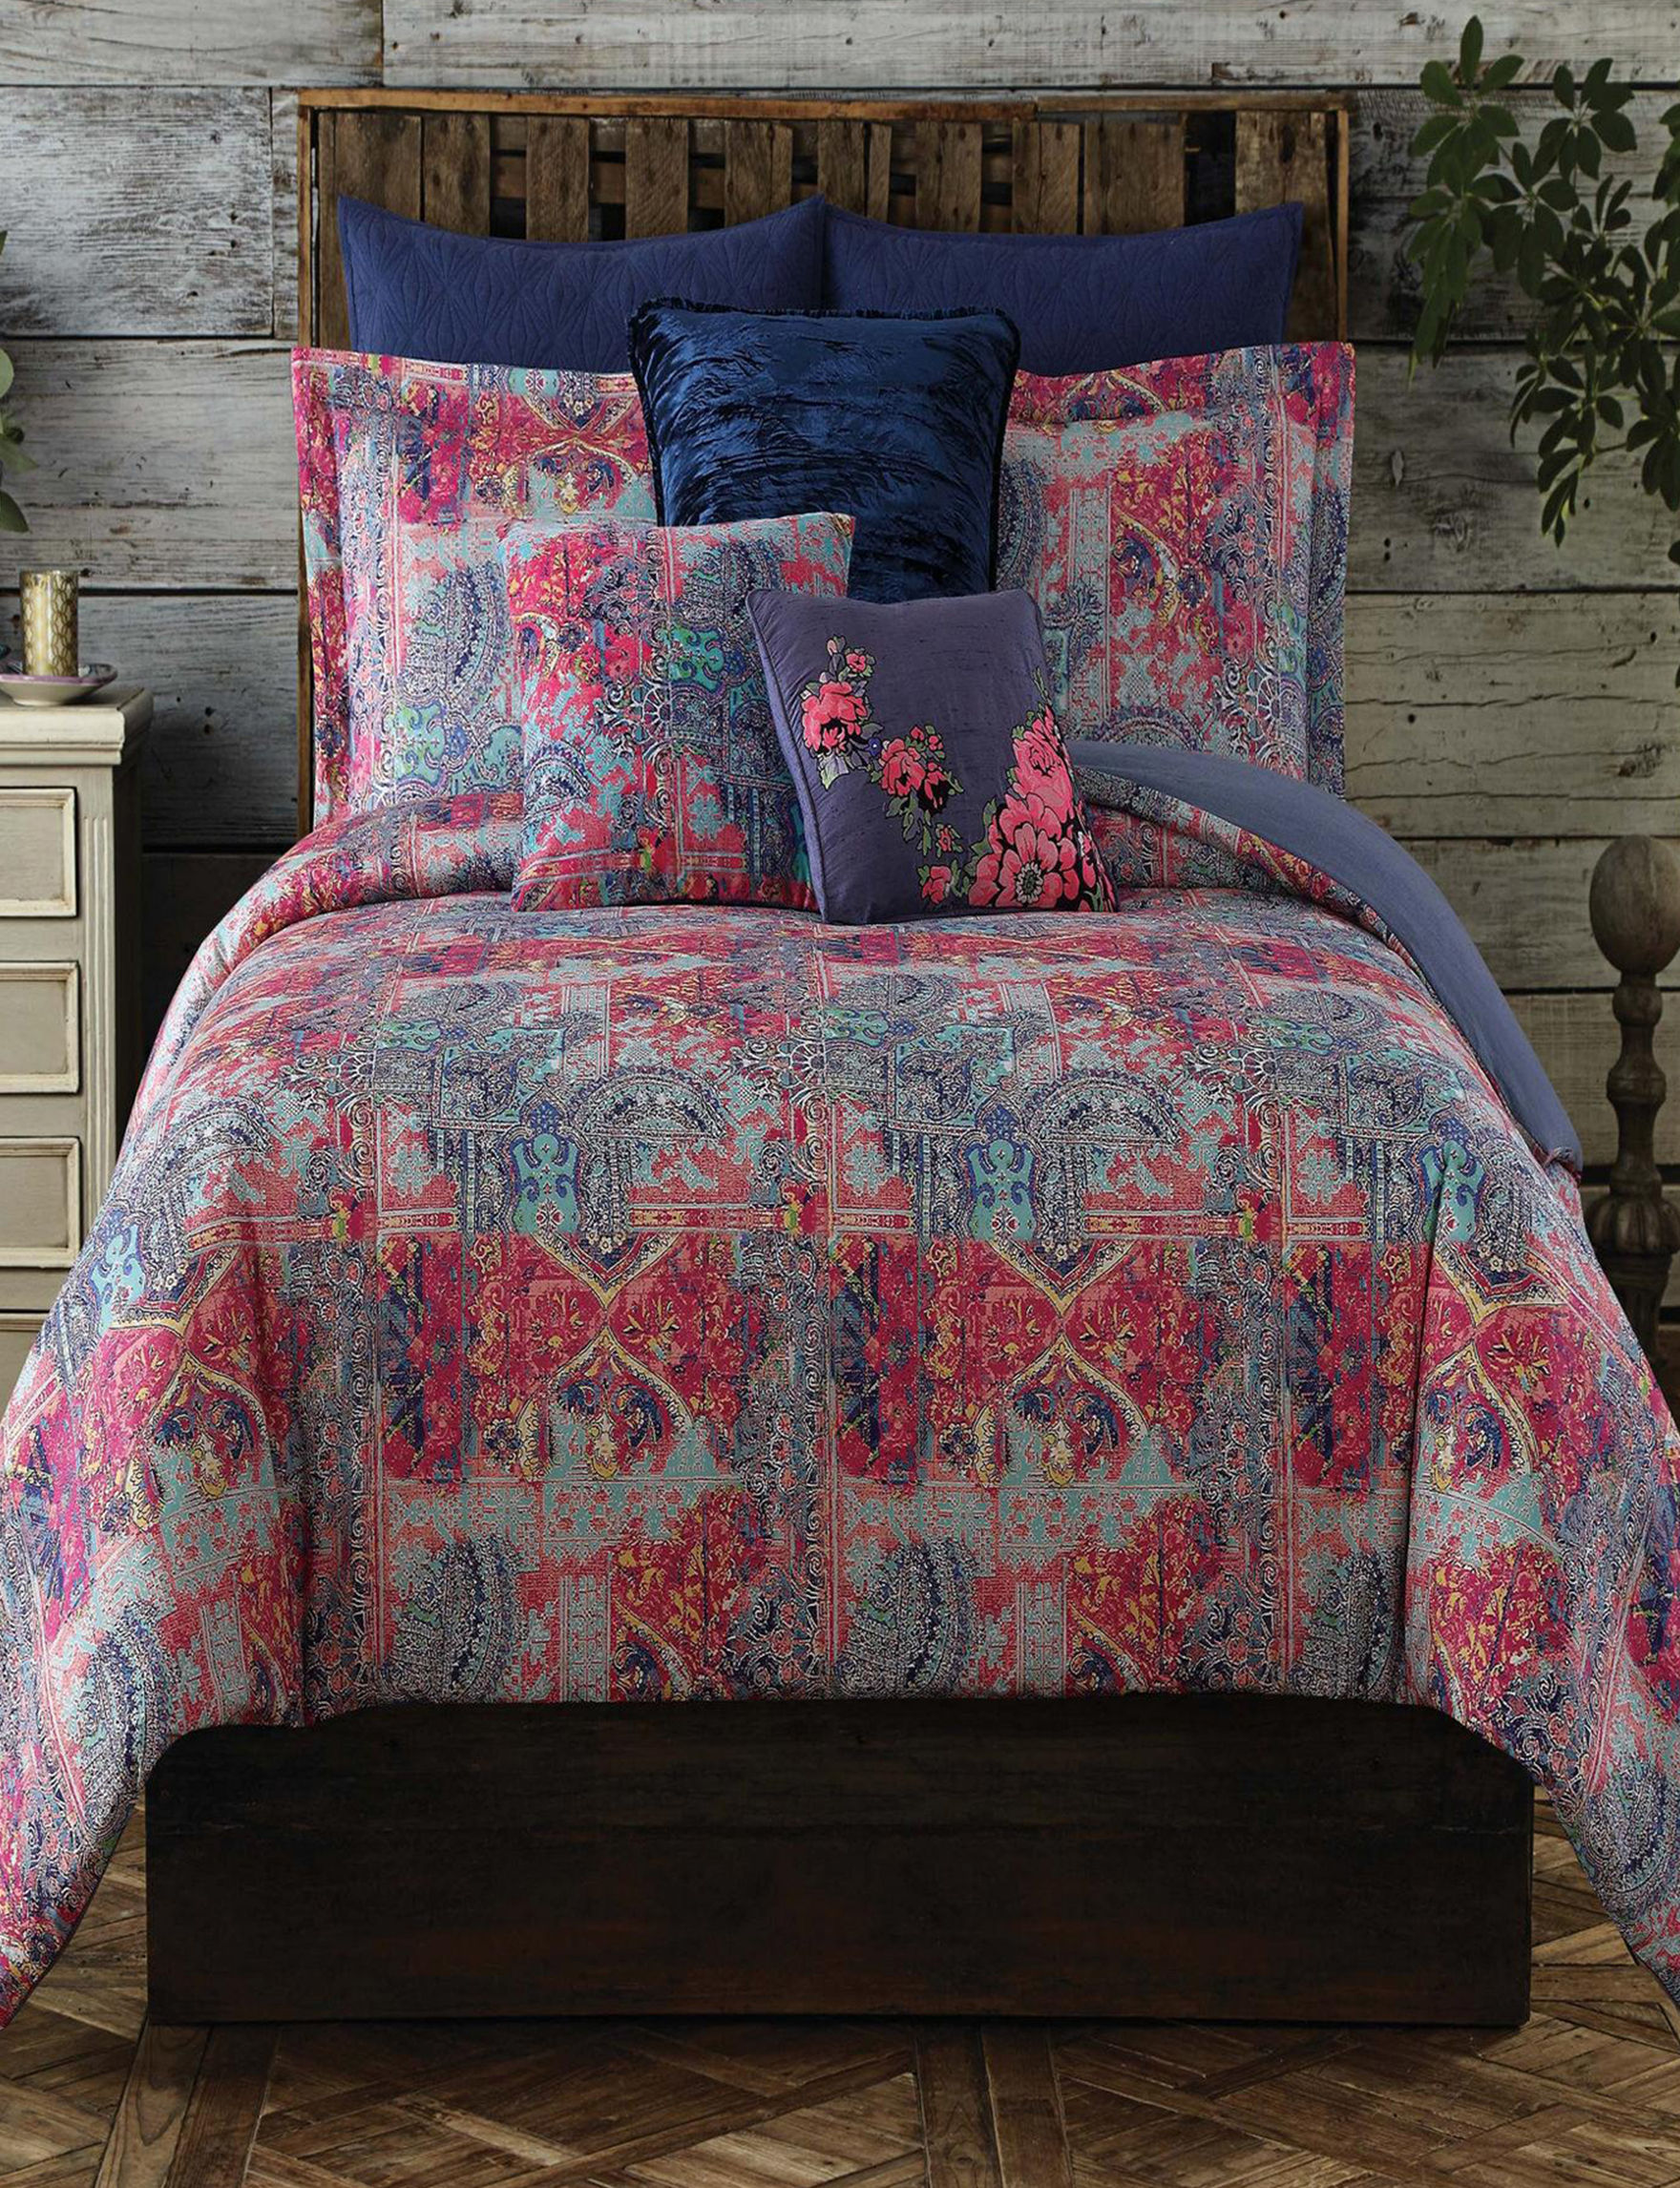 Tracy Porter Red Bed Pillows Sheets & Pillowcases